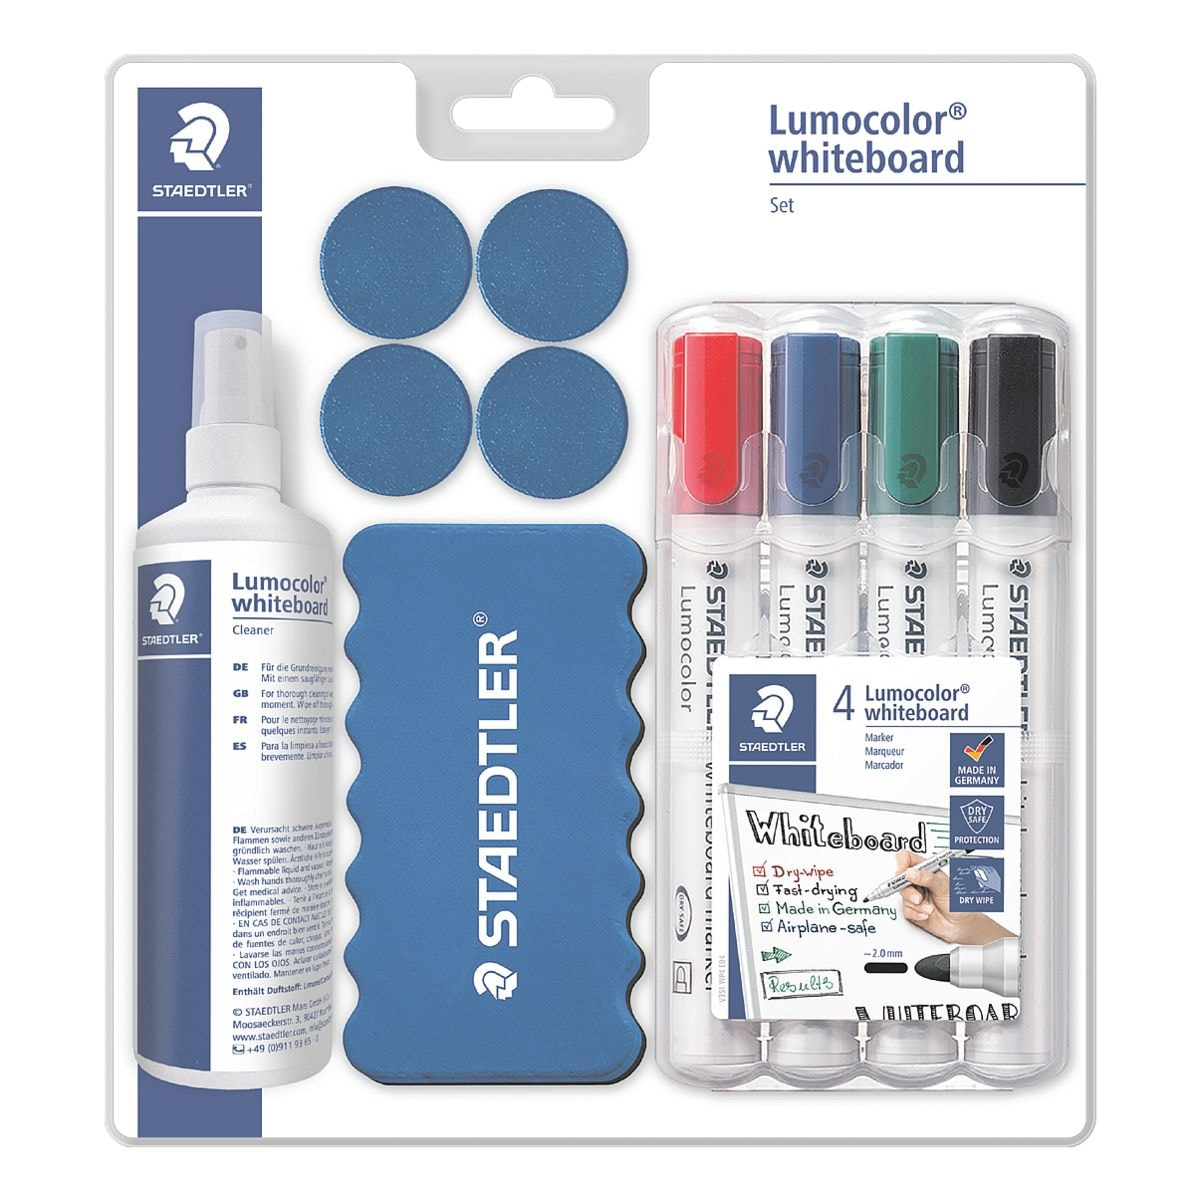 Whiteboard Günstig Staedtler Whiteboardmarker Set Lumocolor 613 S Bei